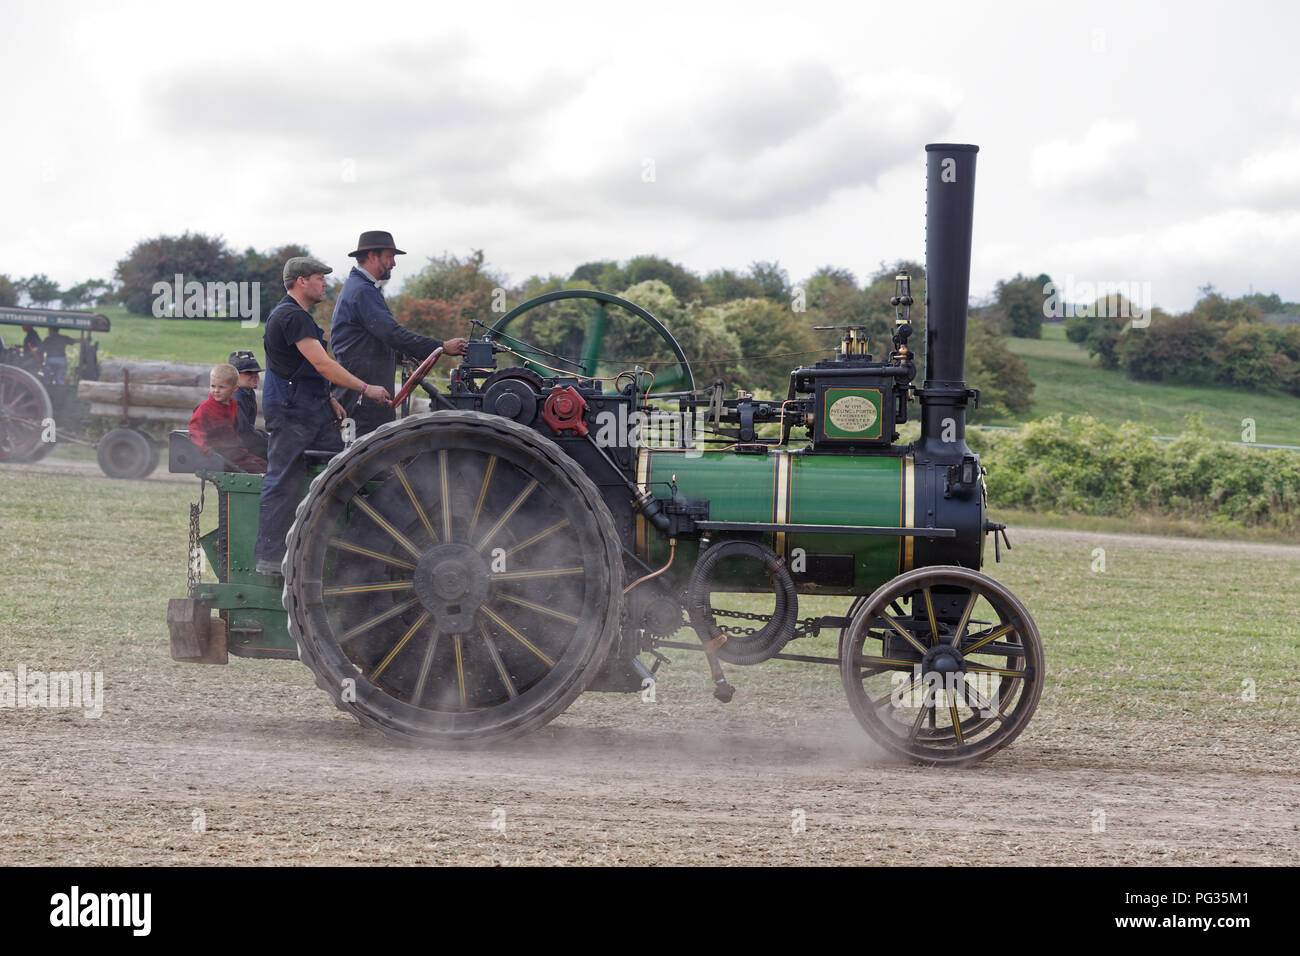 Great Dorset Steam Fair, Blandford, Dorset, UK. 23rd August 2018. Historic steam engines underway at the show. Wyrdlight / Alamy Live News - Stock Image